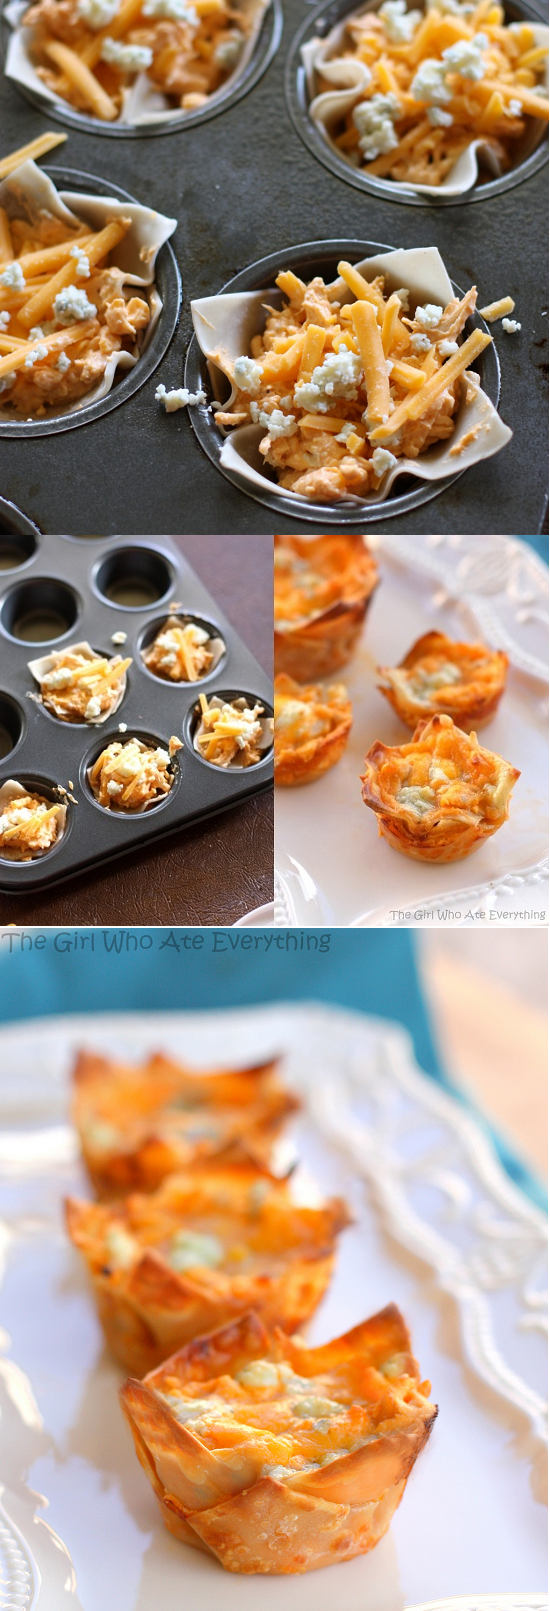 Mini Buffalo chicken cupcakes recipes by cupcakepedia, cupcakes ...